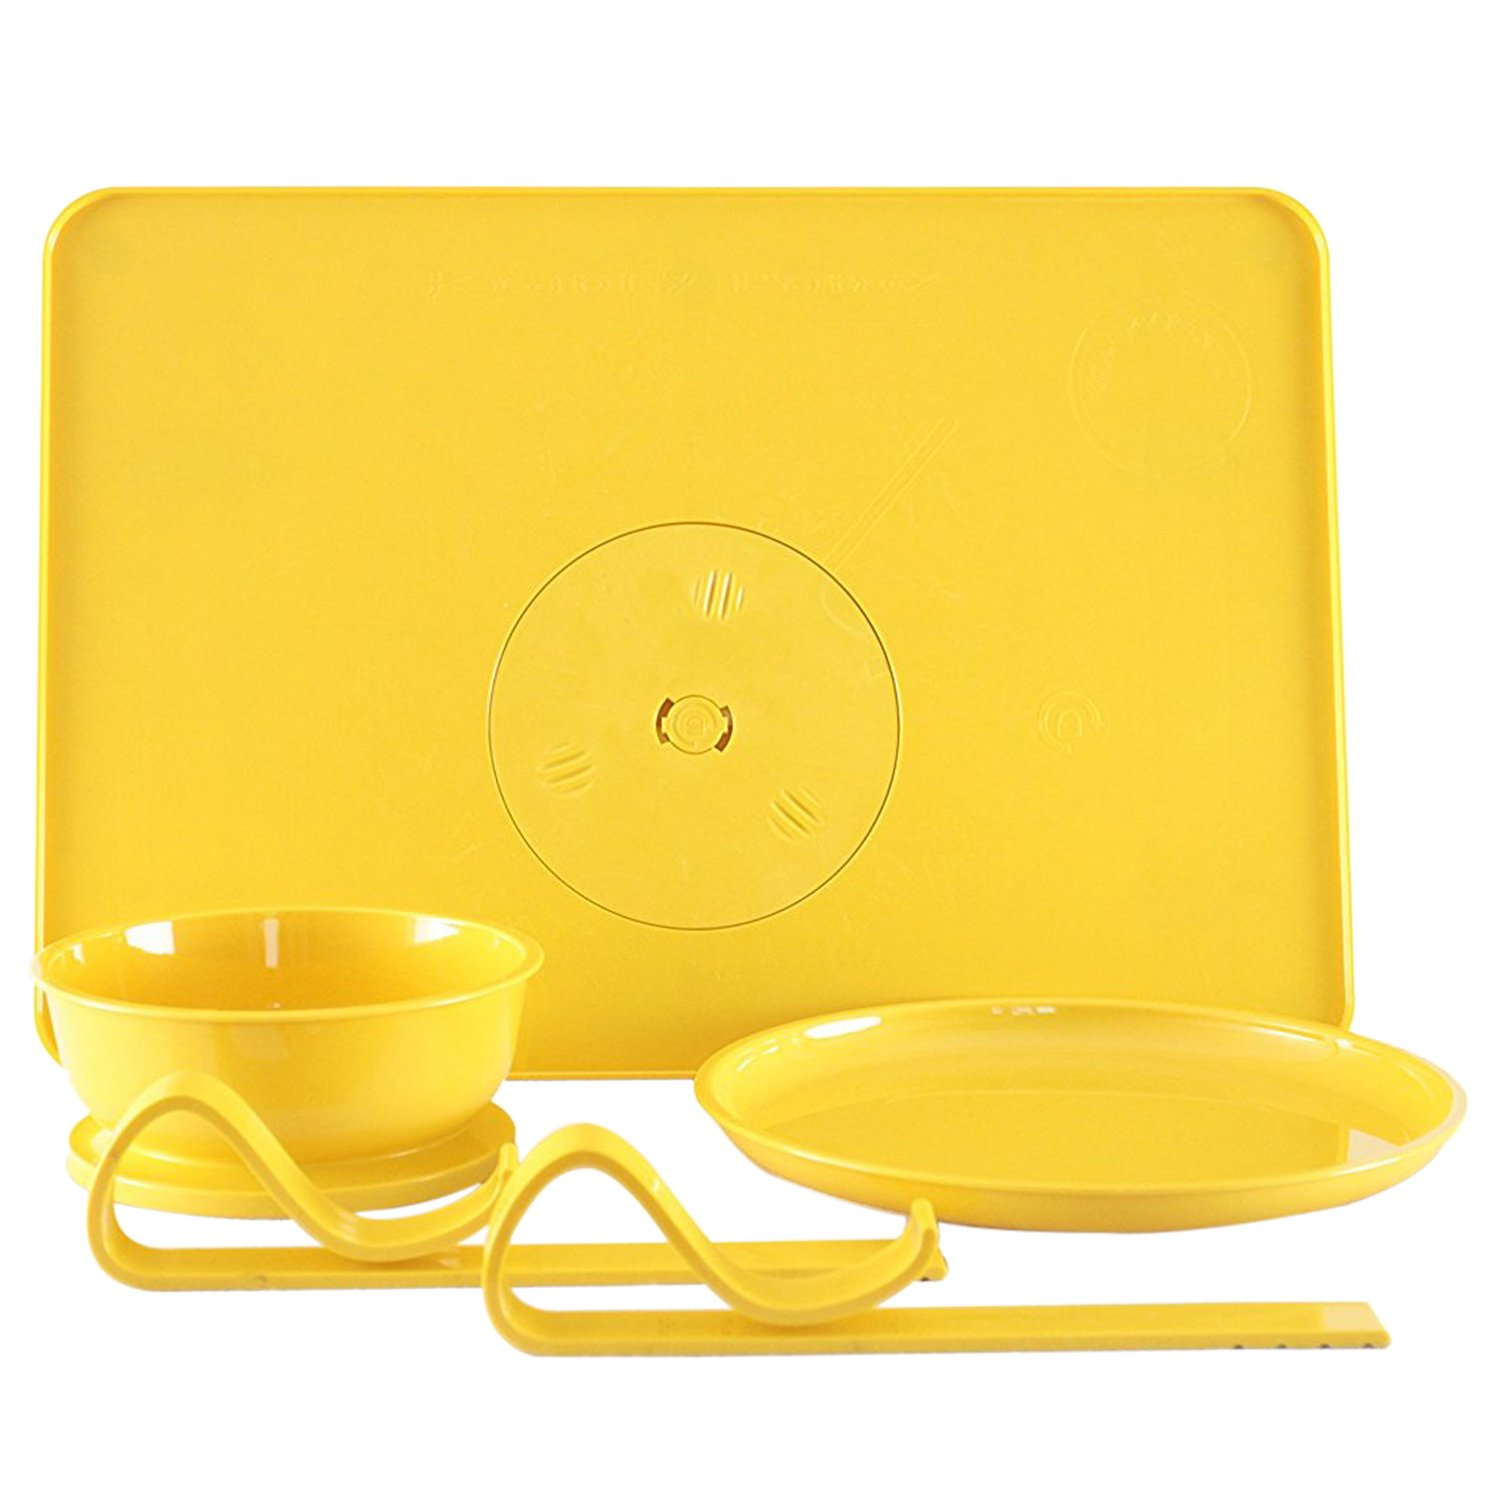 世界的に Locking Bowl & Tray, Bowl Plate With Inc Tray Stay Put Dining Set - Tray Locks to Table - Bowl & Plate Locks to Tray, Yellow by Kranky Pantz, Inc B01D7Q49ZU, はな花薬局:58c95091 --- a0267596.xsph.ru